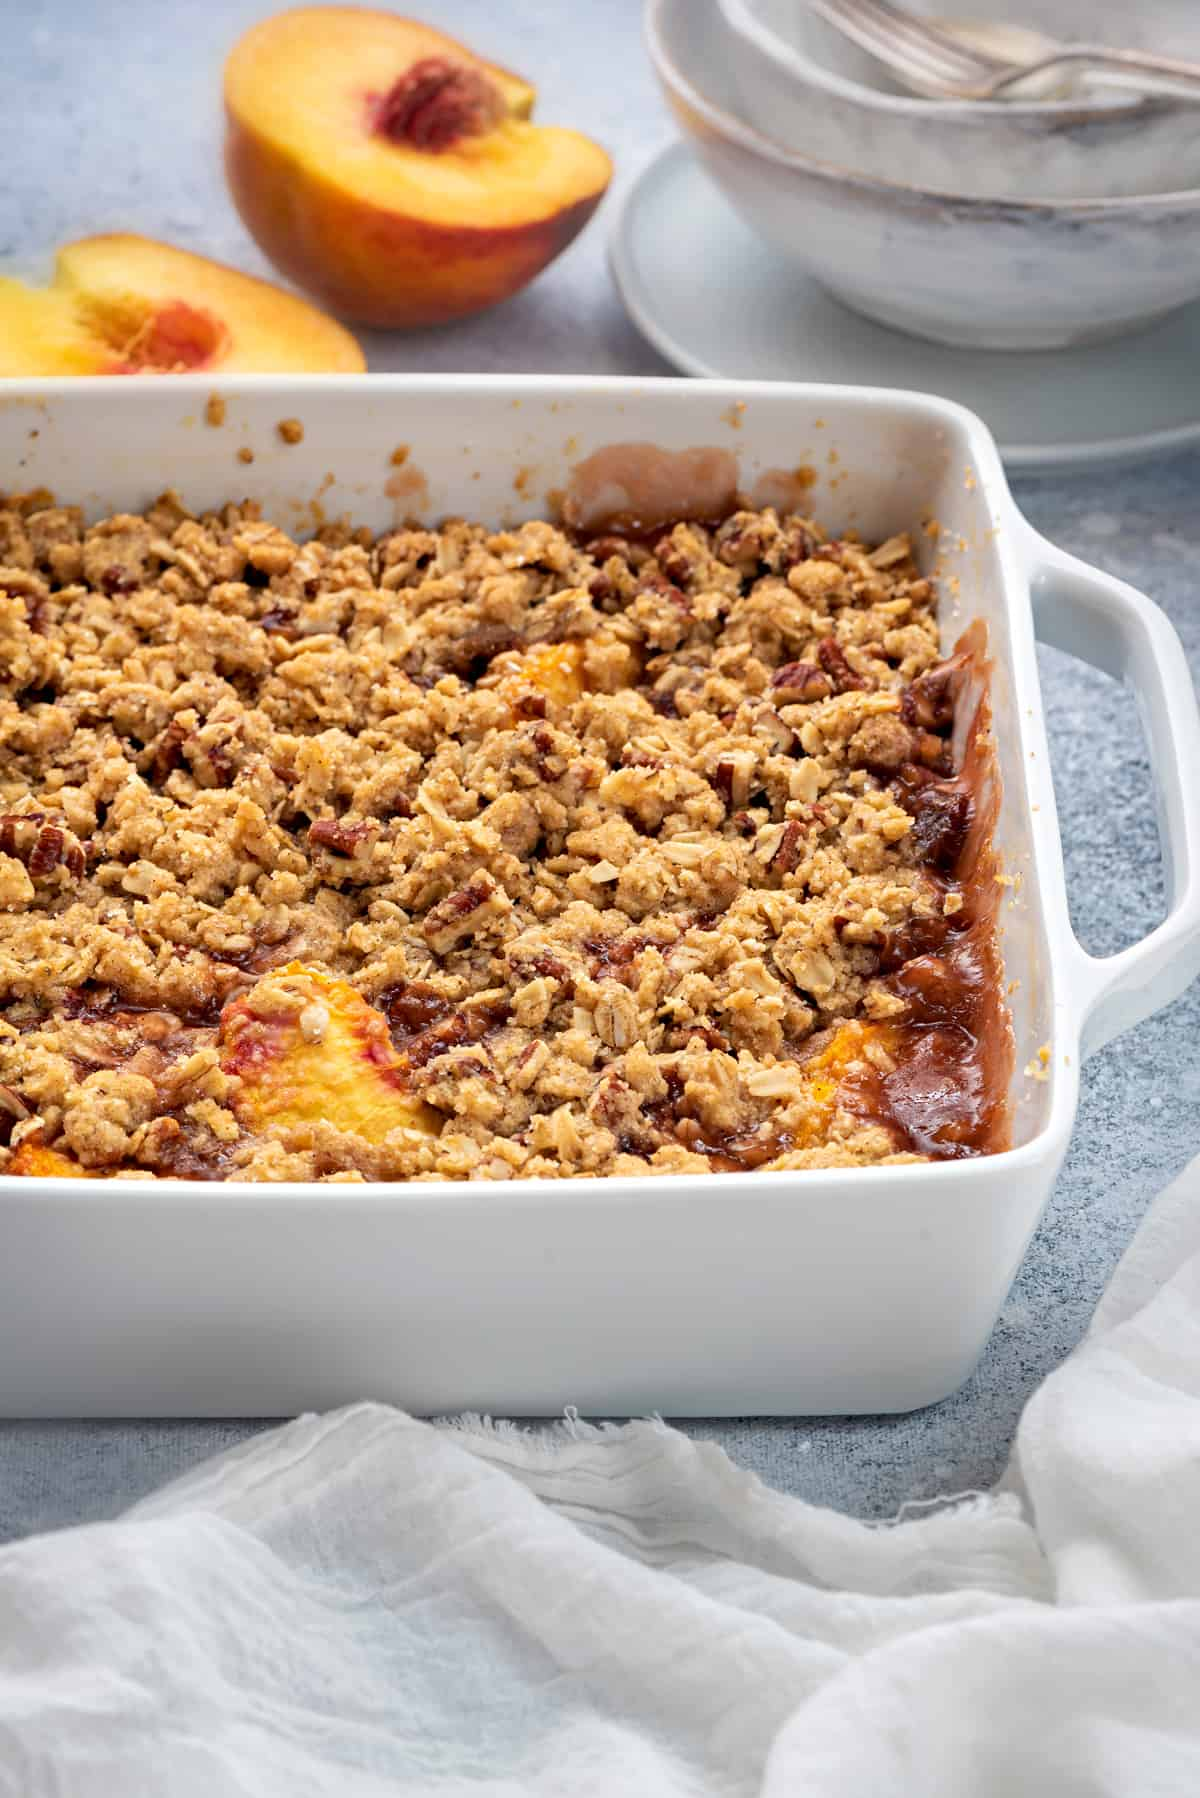 healthy peach crisp with oat topping in a white casserole dish on a grey table